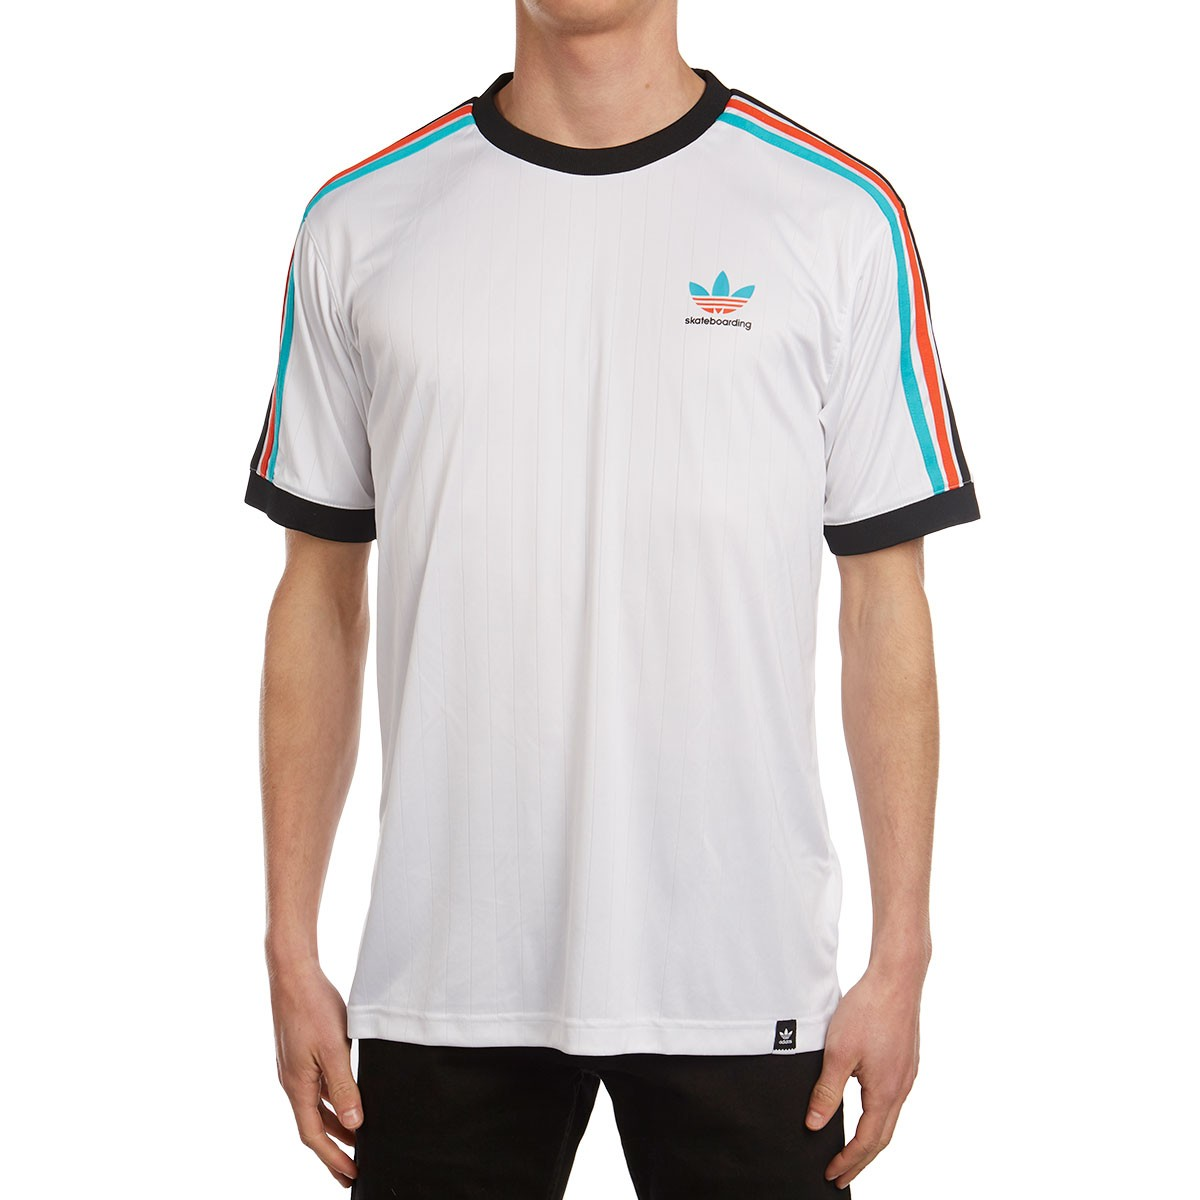 a91c6875c Adidas Clima Club Jersey - White/Energy Blue/Black